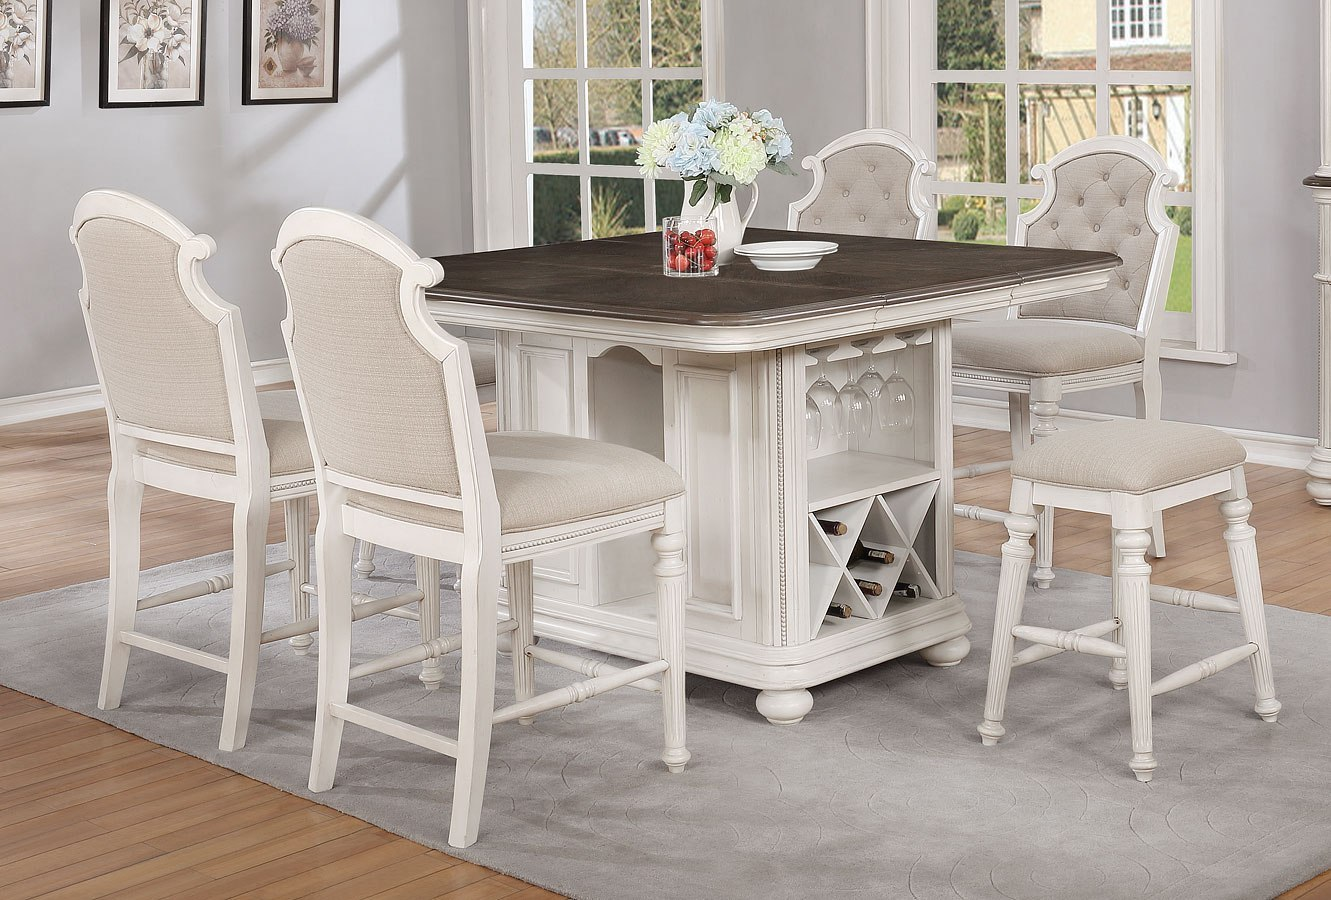 West Chester Kitchen Island Set w/ Chair Choices